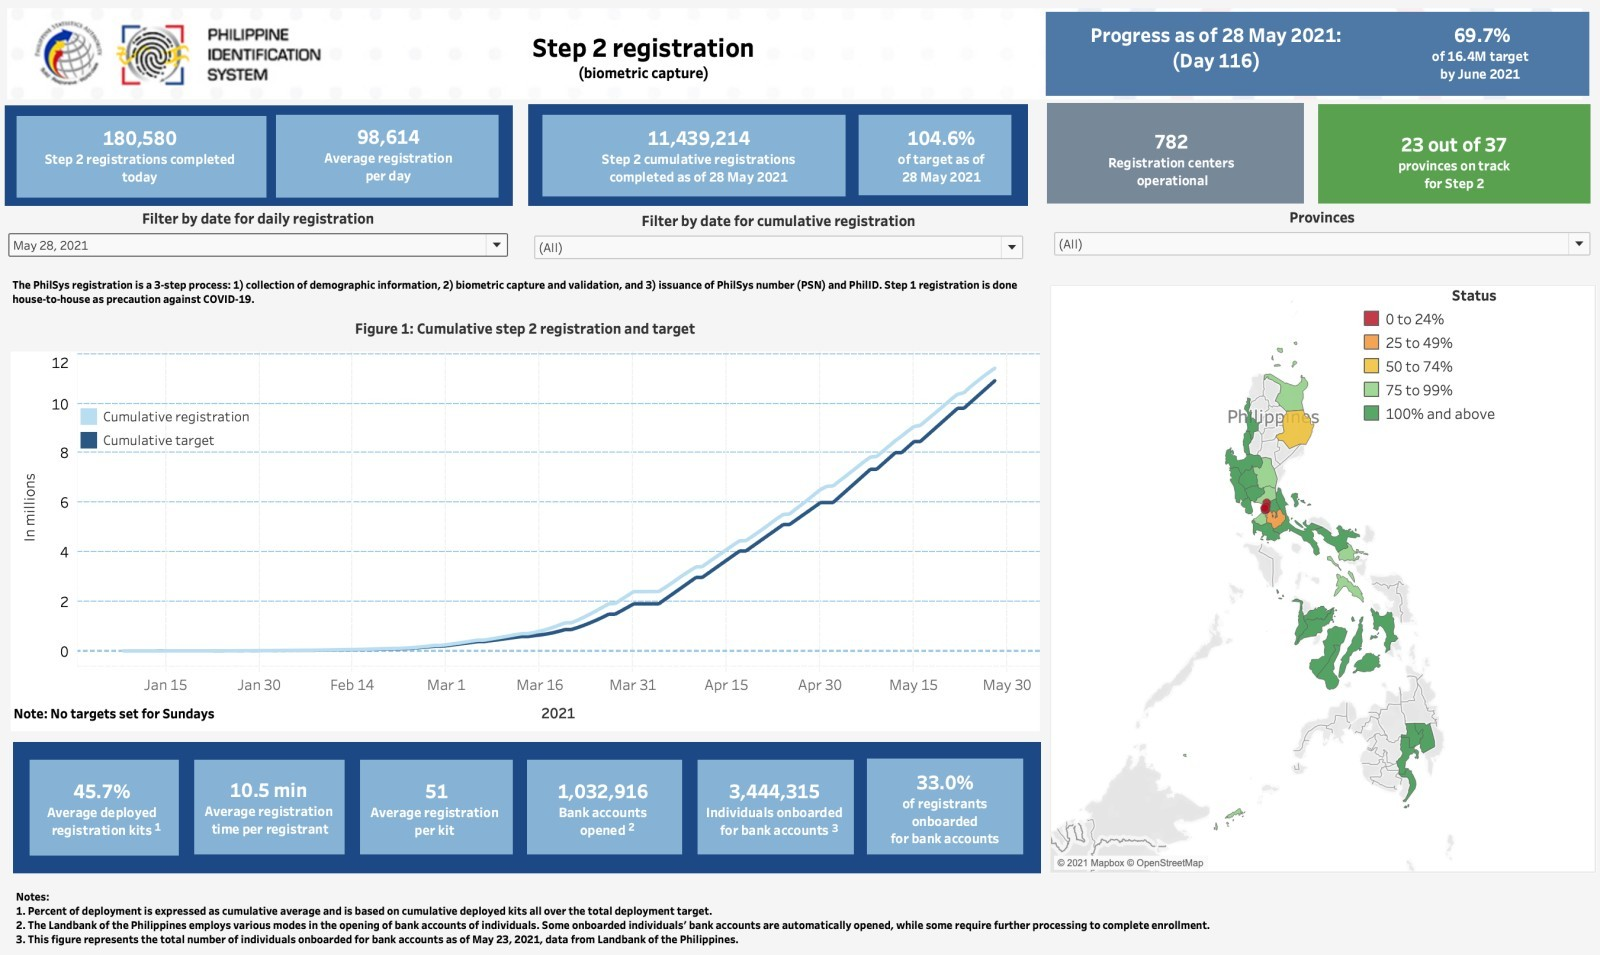 Step 2 Dashboard as of 28 May 2021